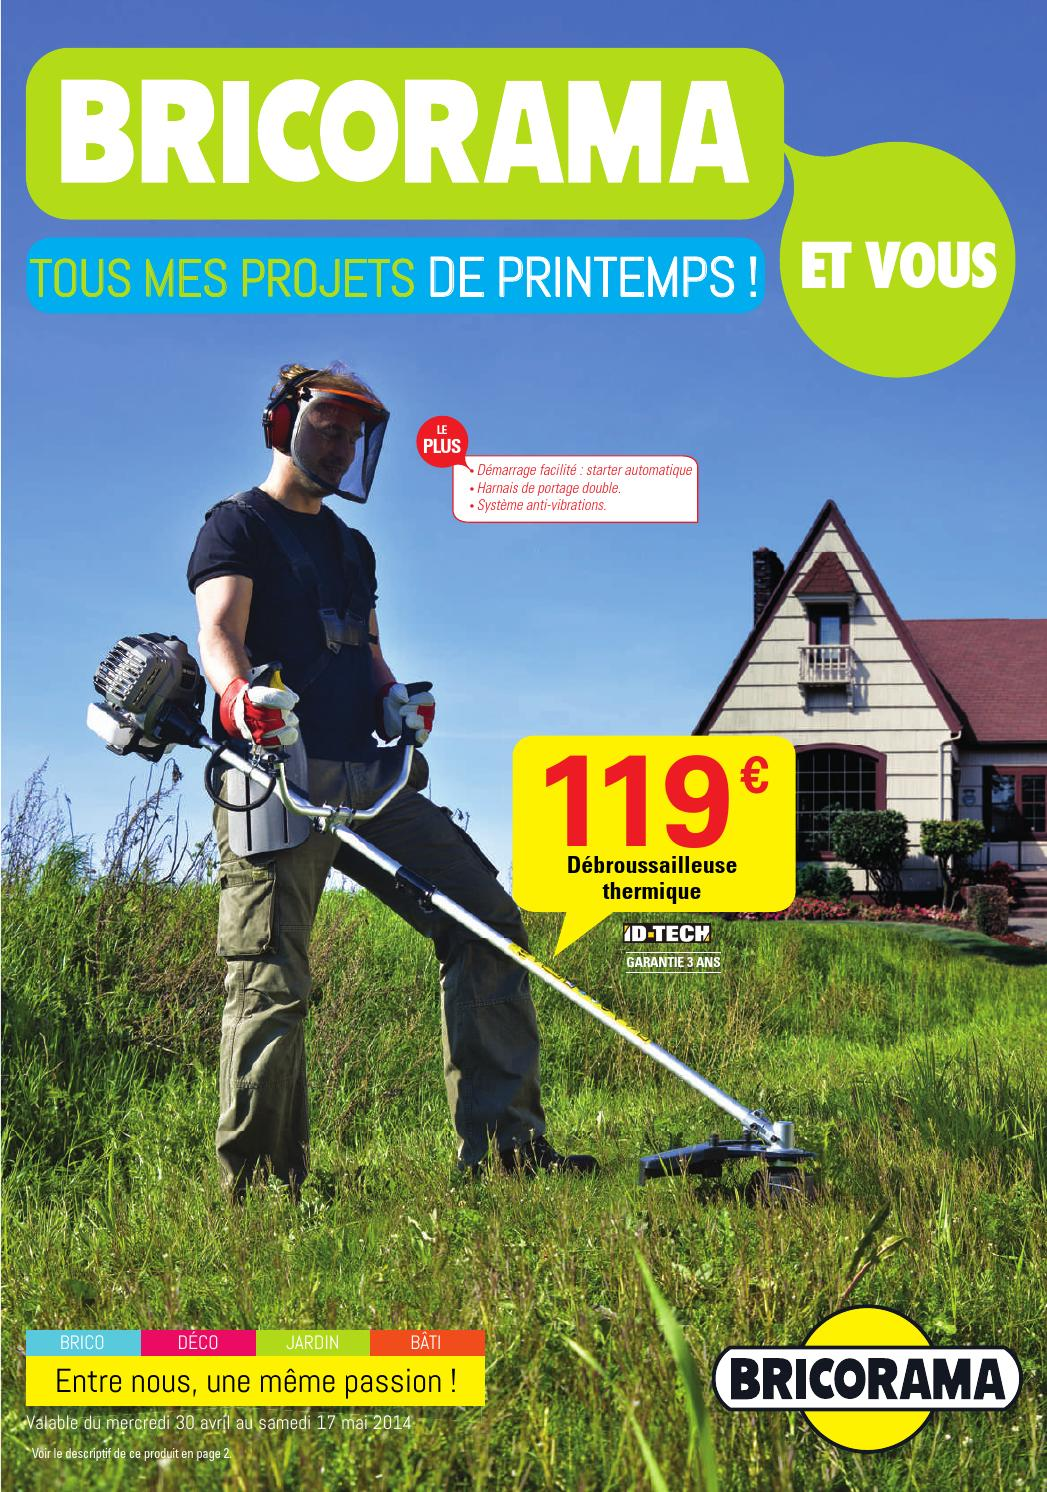 Bricorama catalogue 30avril 17mai2014 by promocatalogues for Brico bati jardin